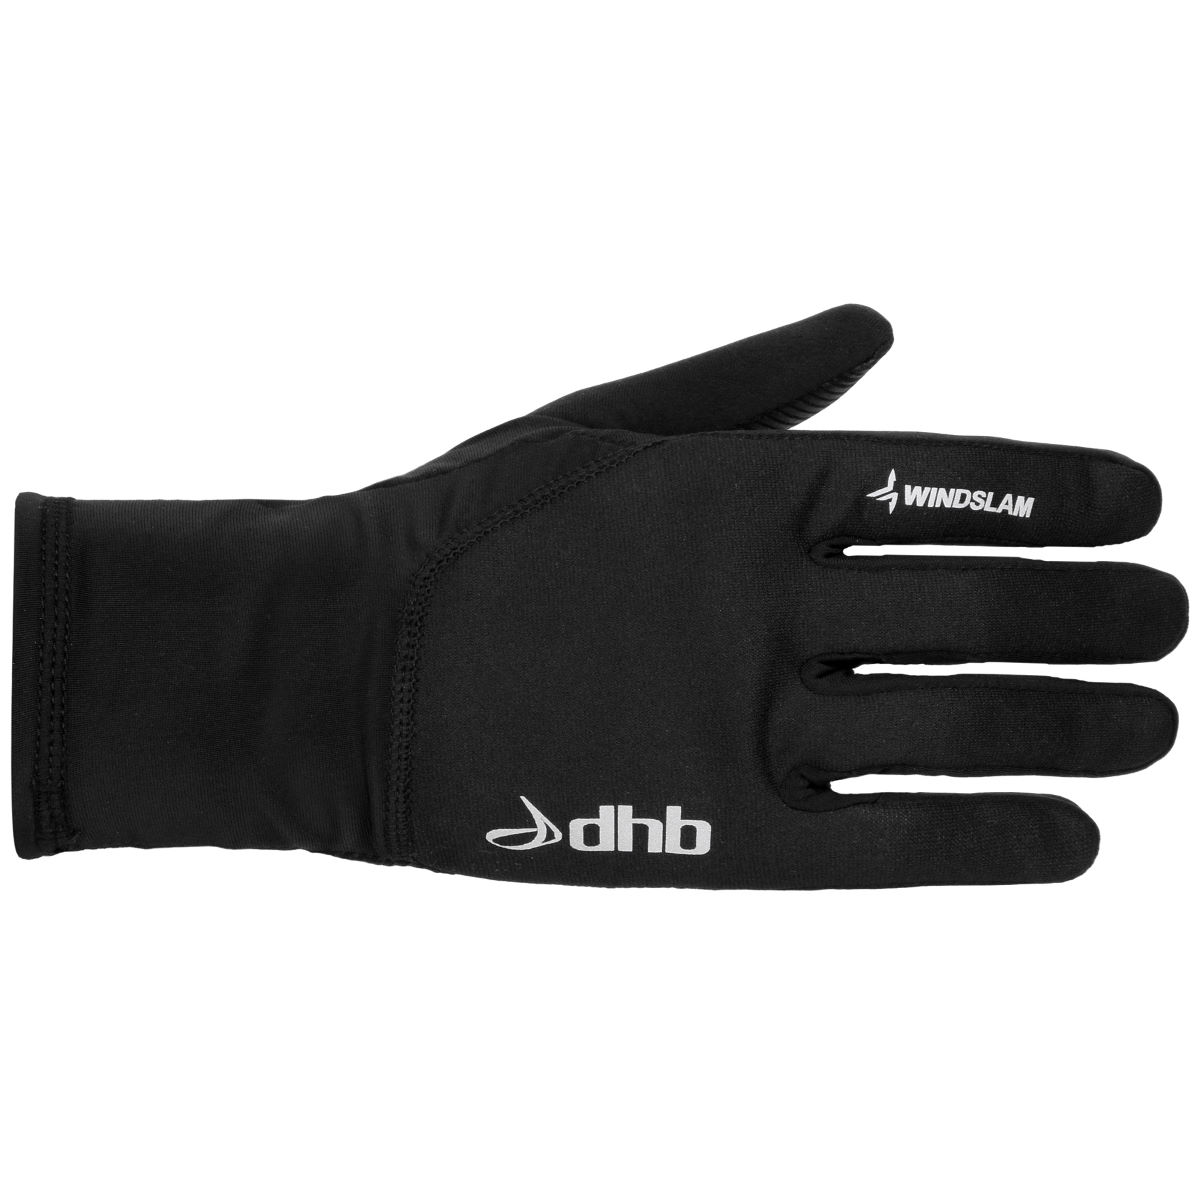 Guantes dhb Windslam Stretch - Guantes largos